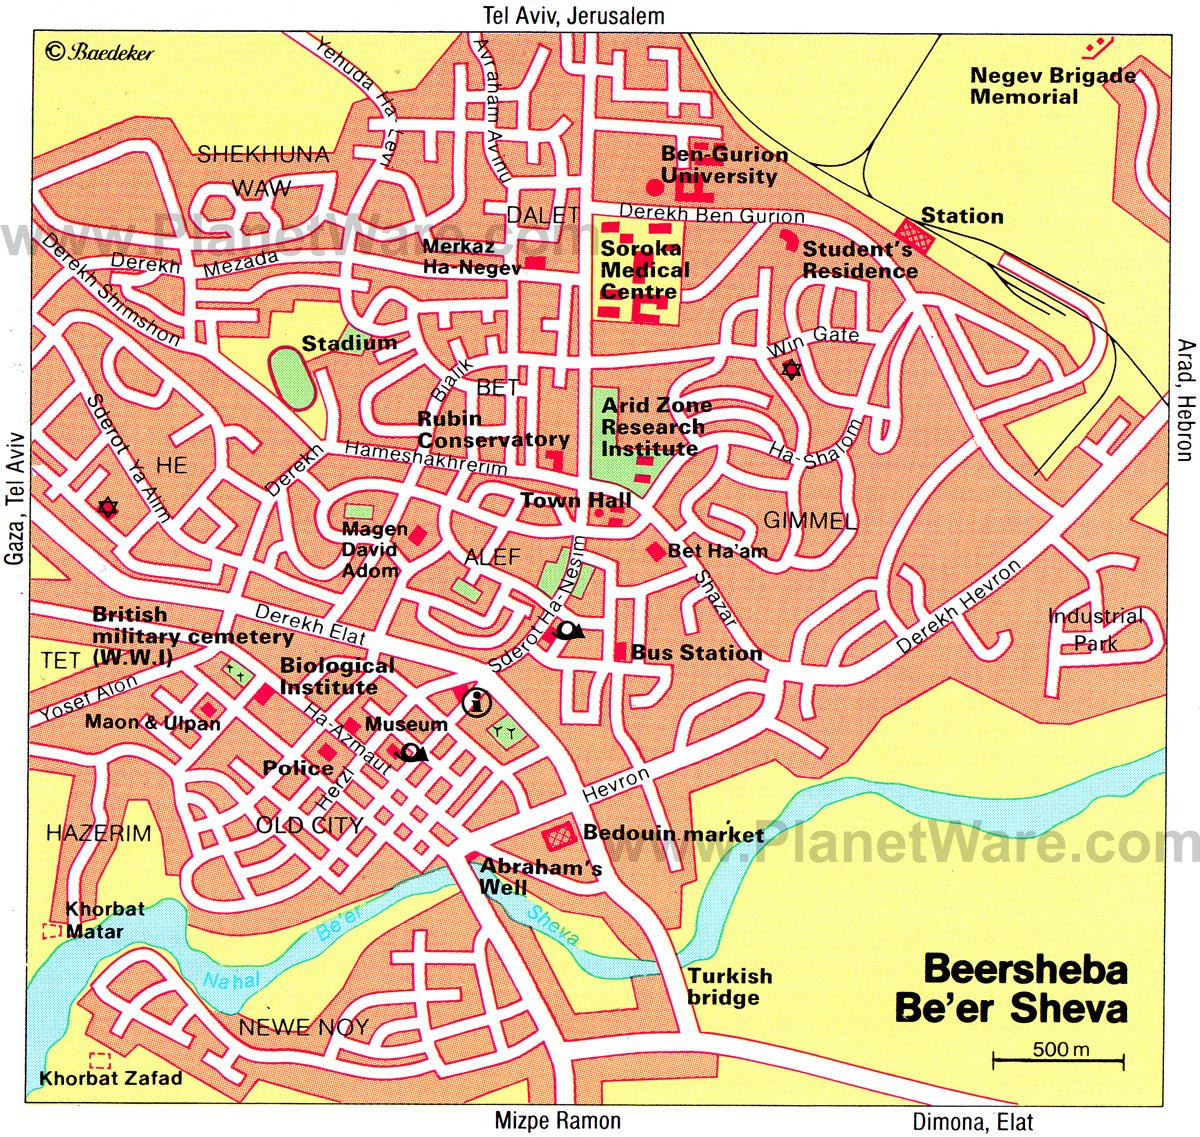 10 TopRated Tourist Attractions in the Negev Region – Tourist Map Of Tel Aviv